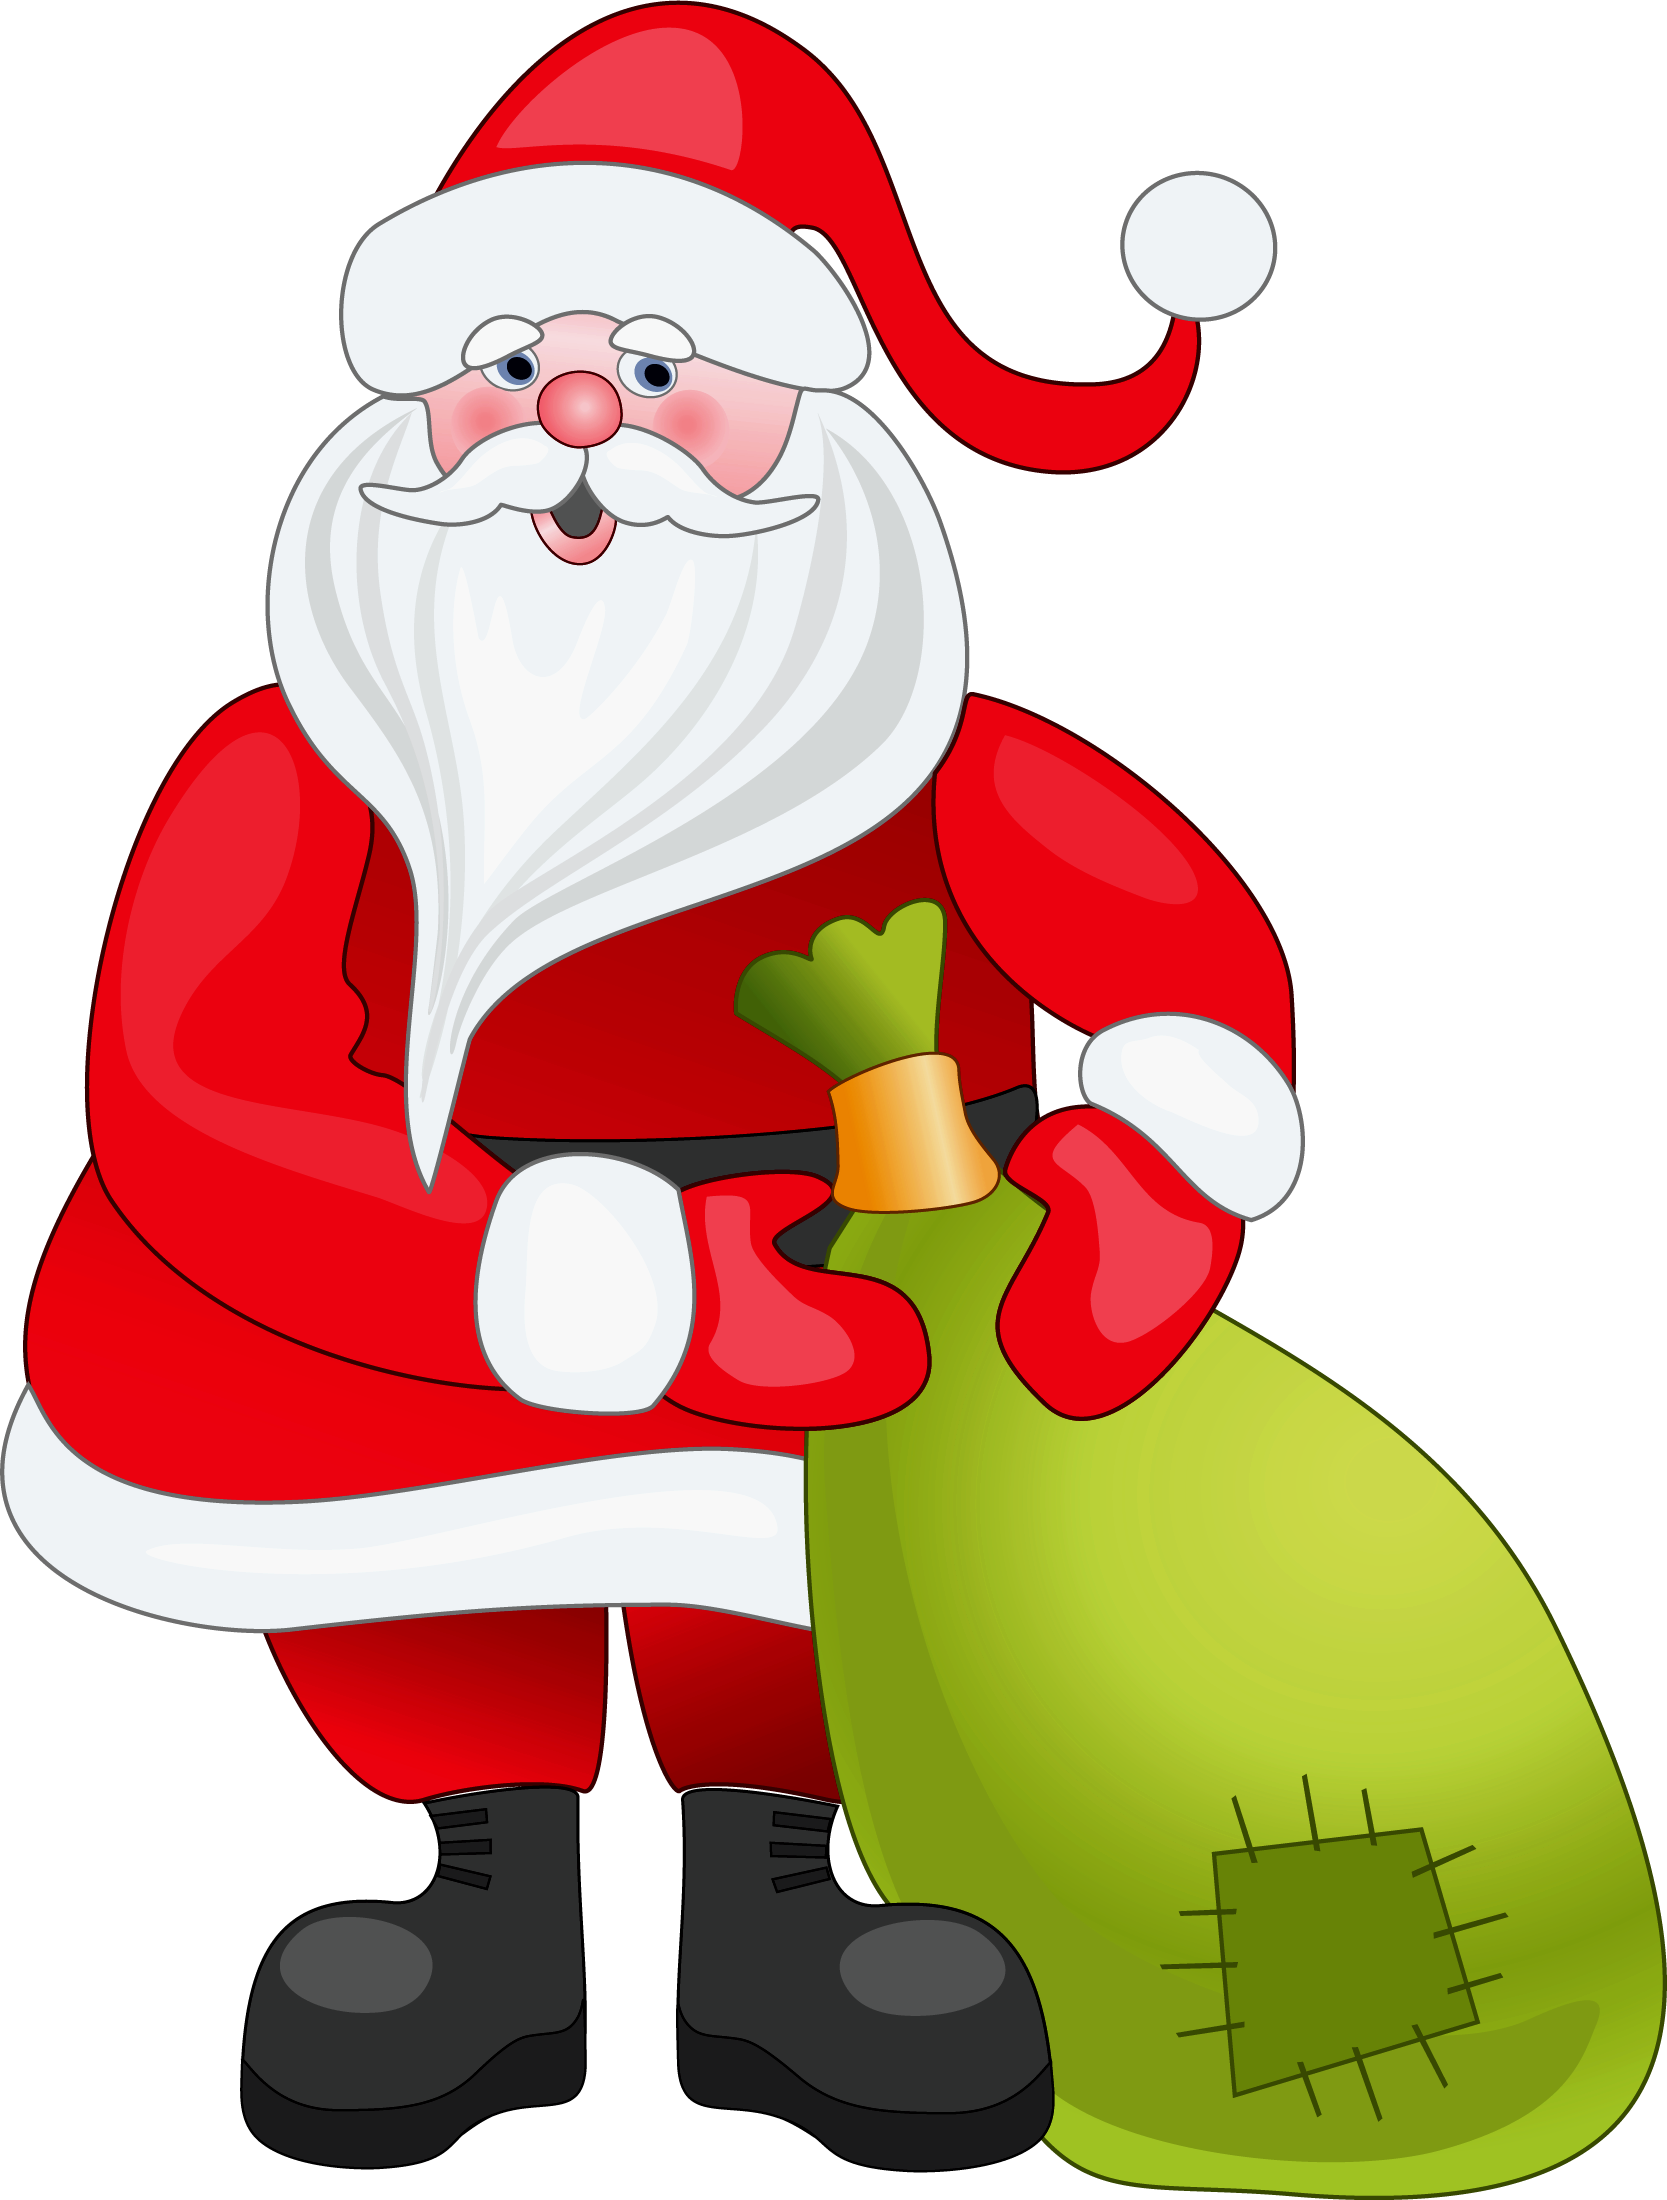 small resolution of 58 free santa clipart cliparting pictures od santa claus clipart santa claus images